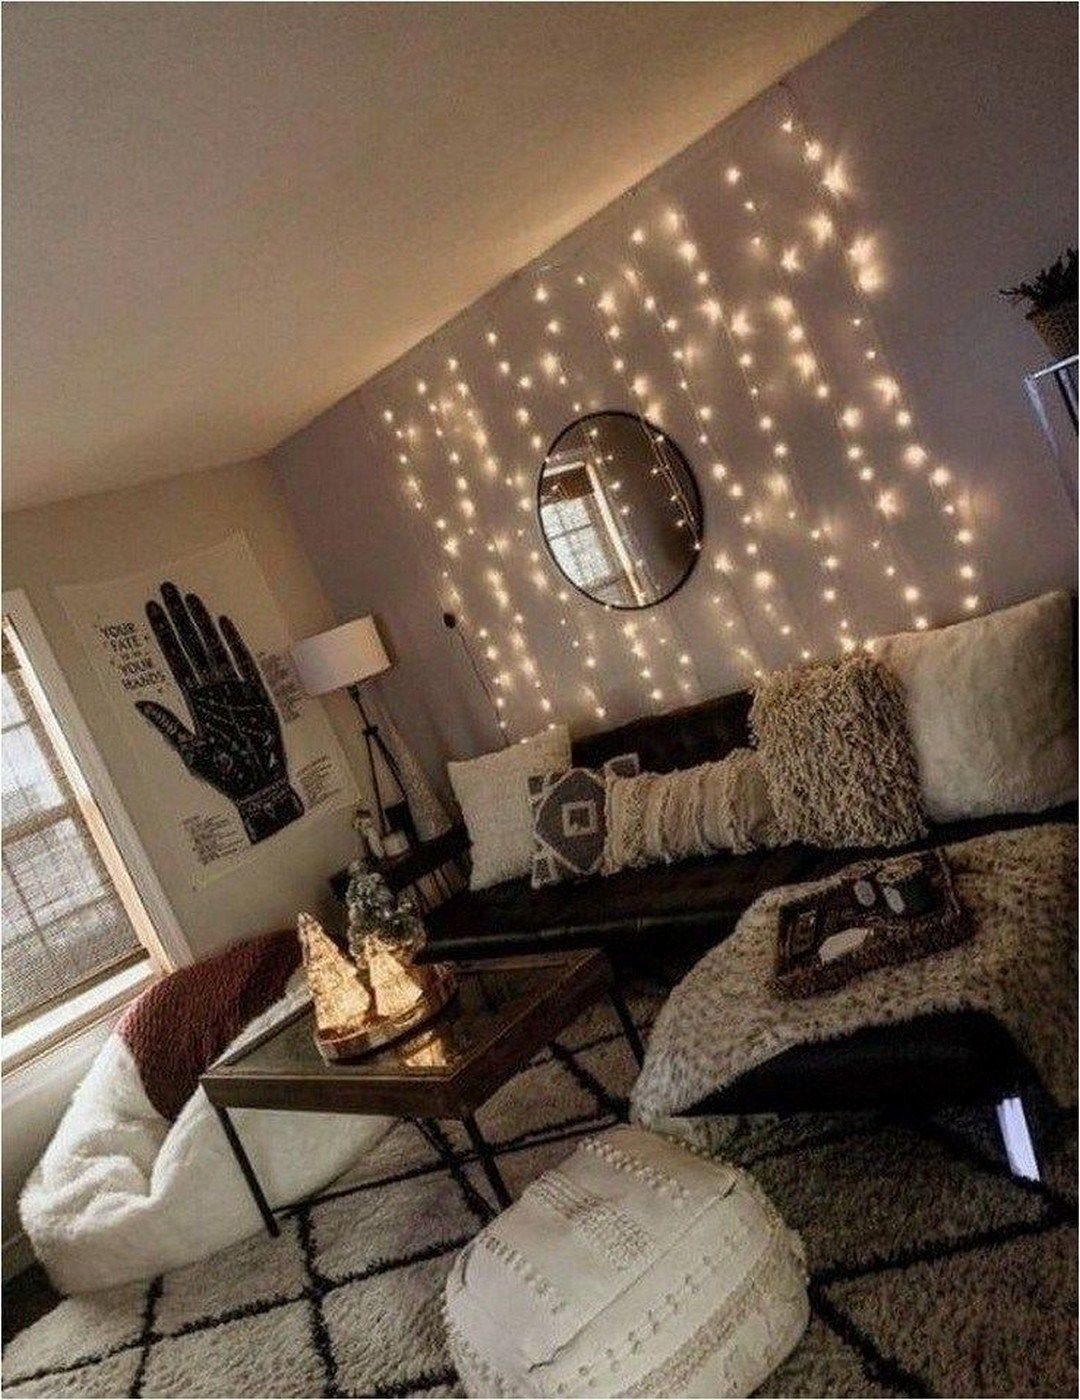 23 Totally Smart Diy College Apartment Decoration Ideas On A Budget 8 Living Room Decor Apartment First Apartment Decorating College Apartment Decor College living room decor